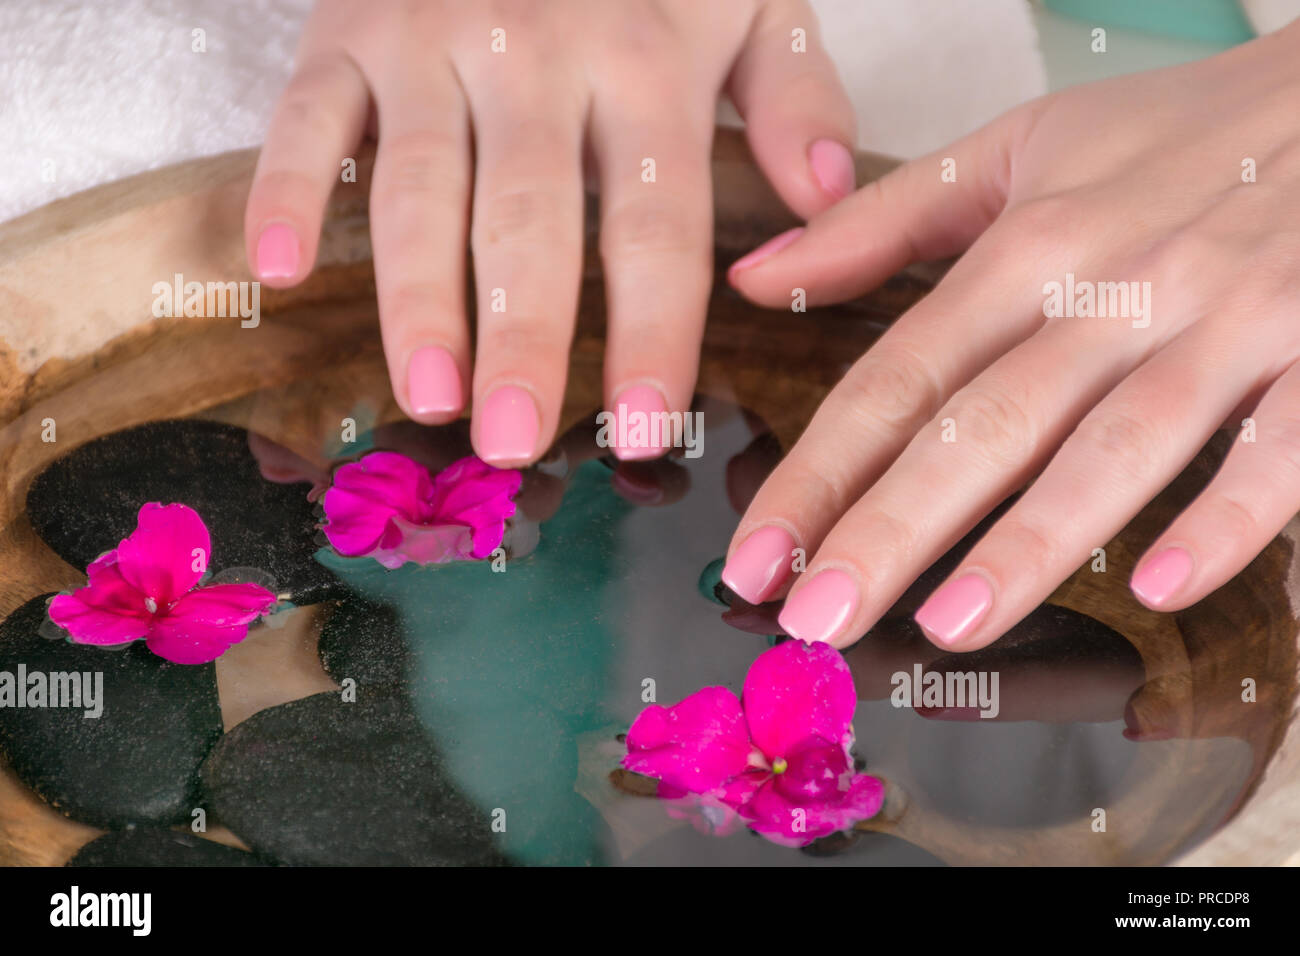 Woman Hands With Gently Pink Nails Gel Polish Above Water With